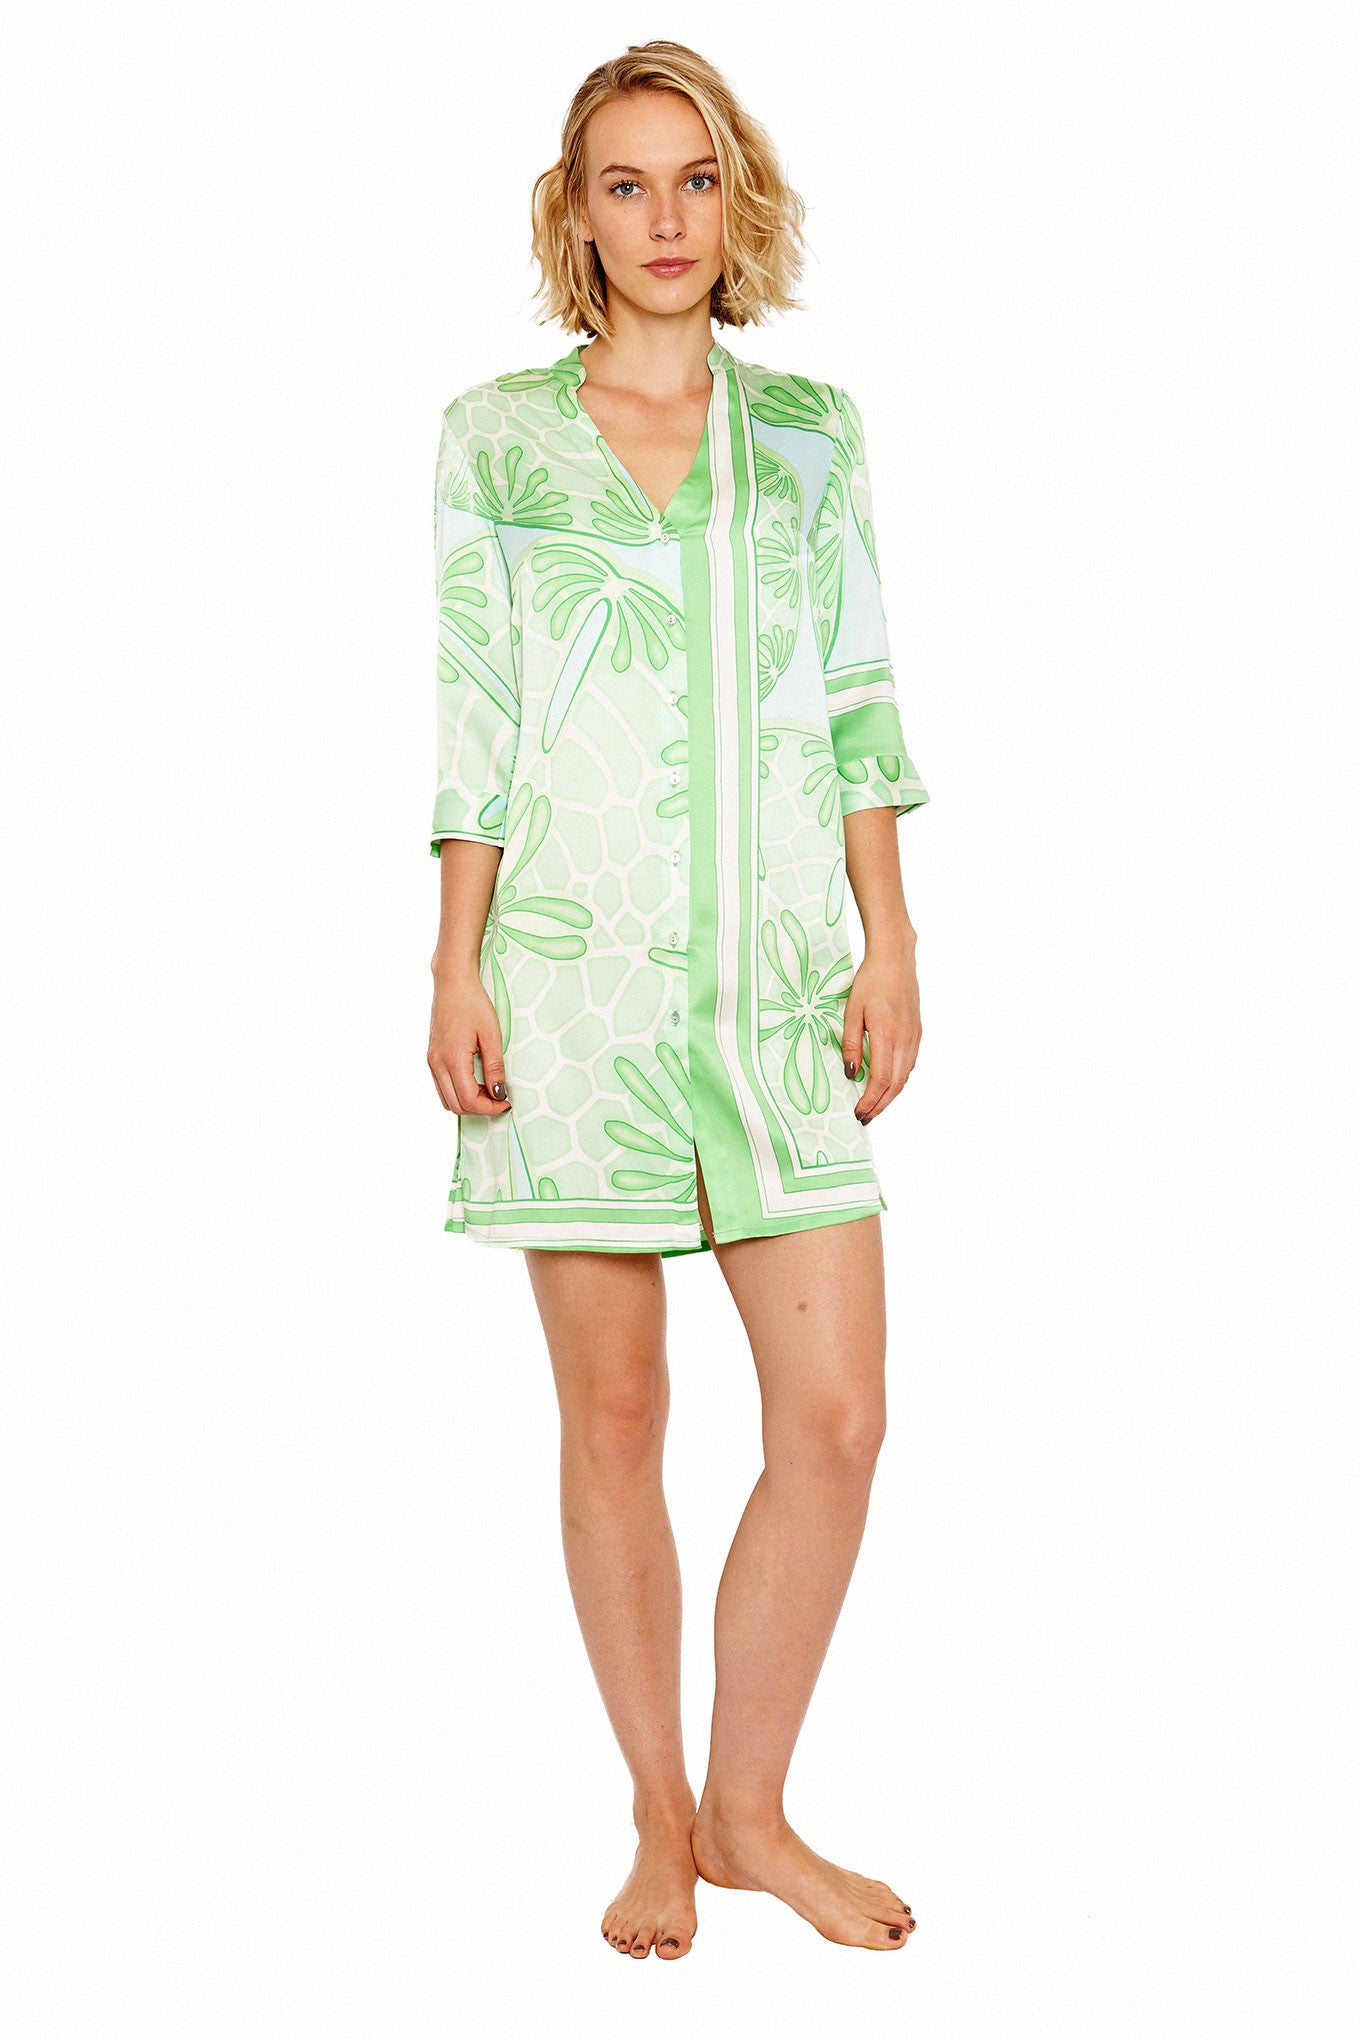 Lotty B Shirt Dress in Silk Crepe-de-Chine (Sand Dollar Green) Front